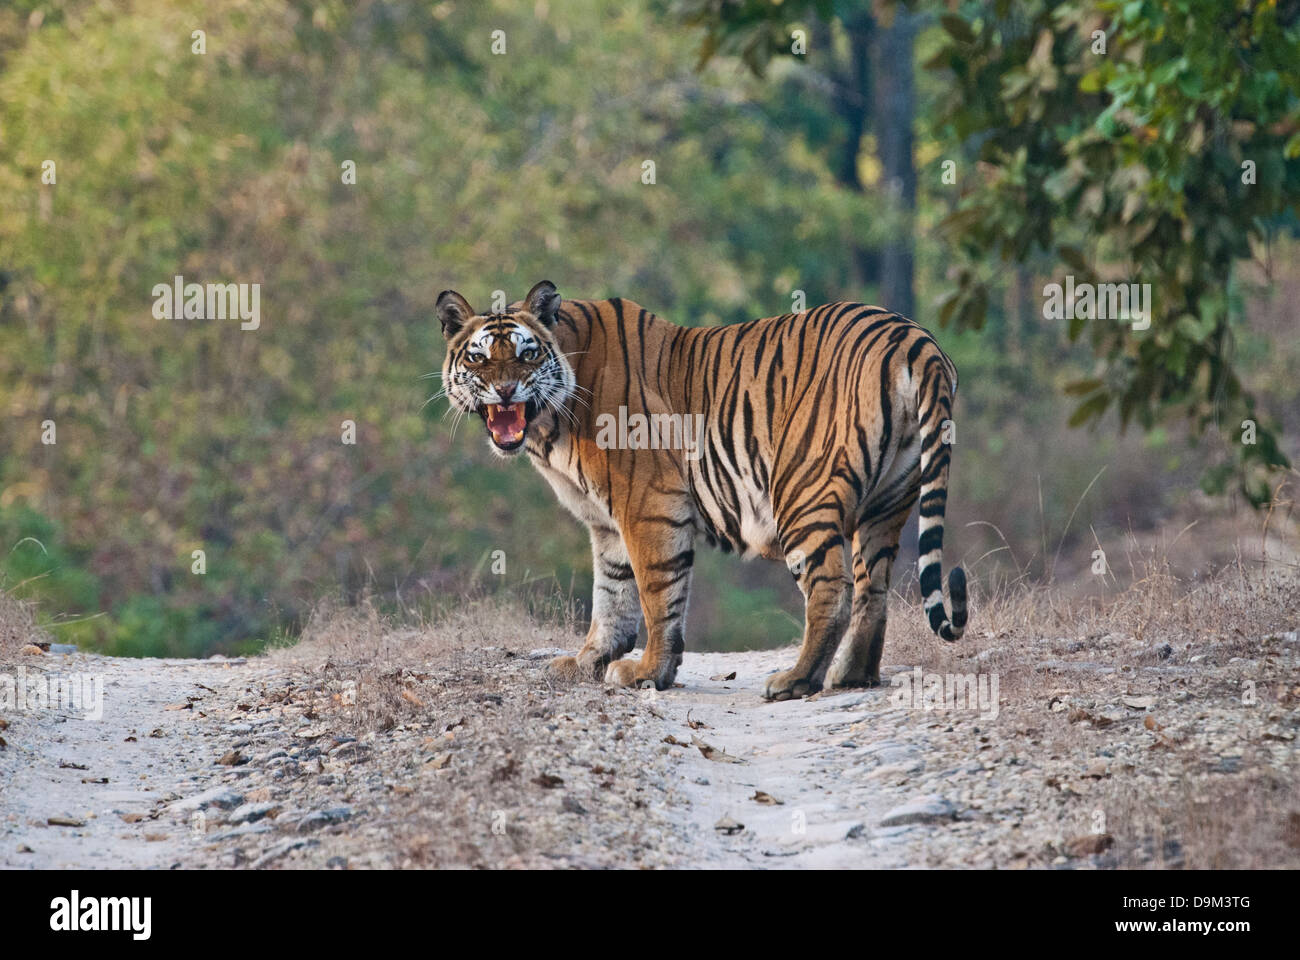 Bengal tiger snarling on road in Bandhavgarh National Park, India - Stock Image